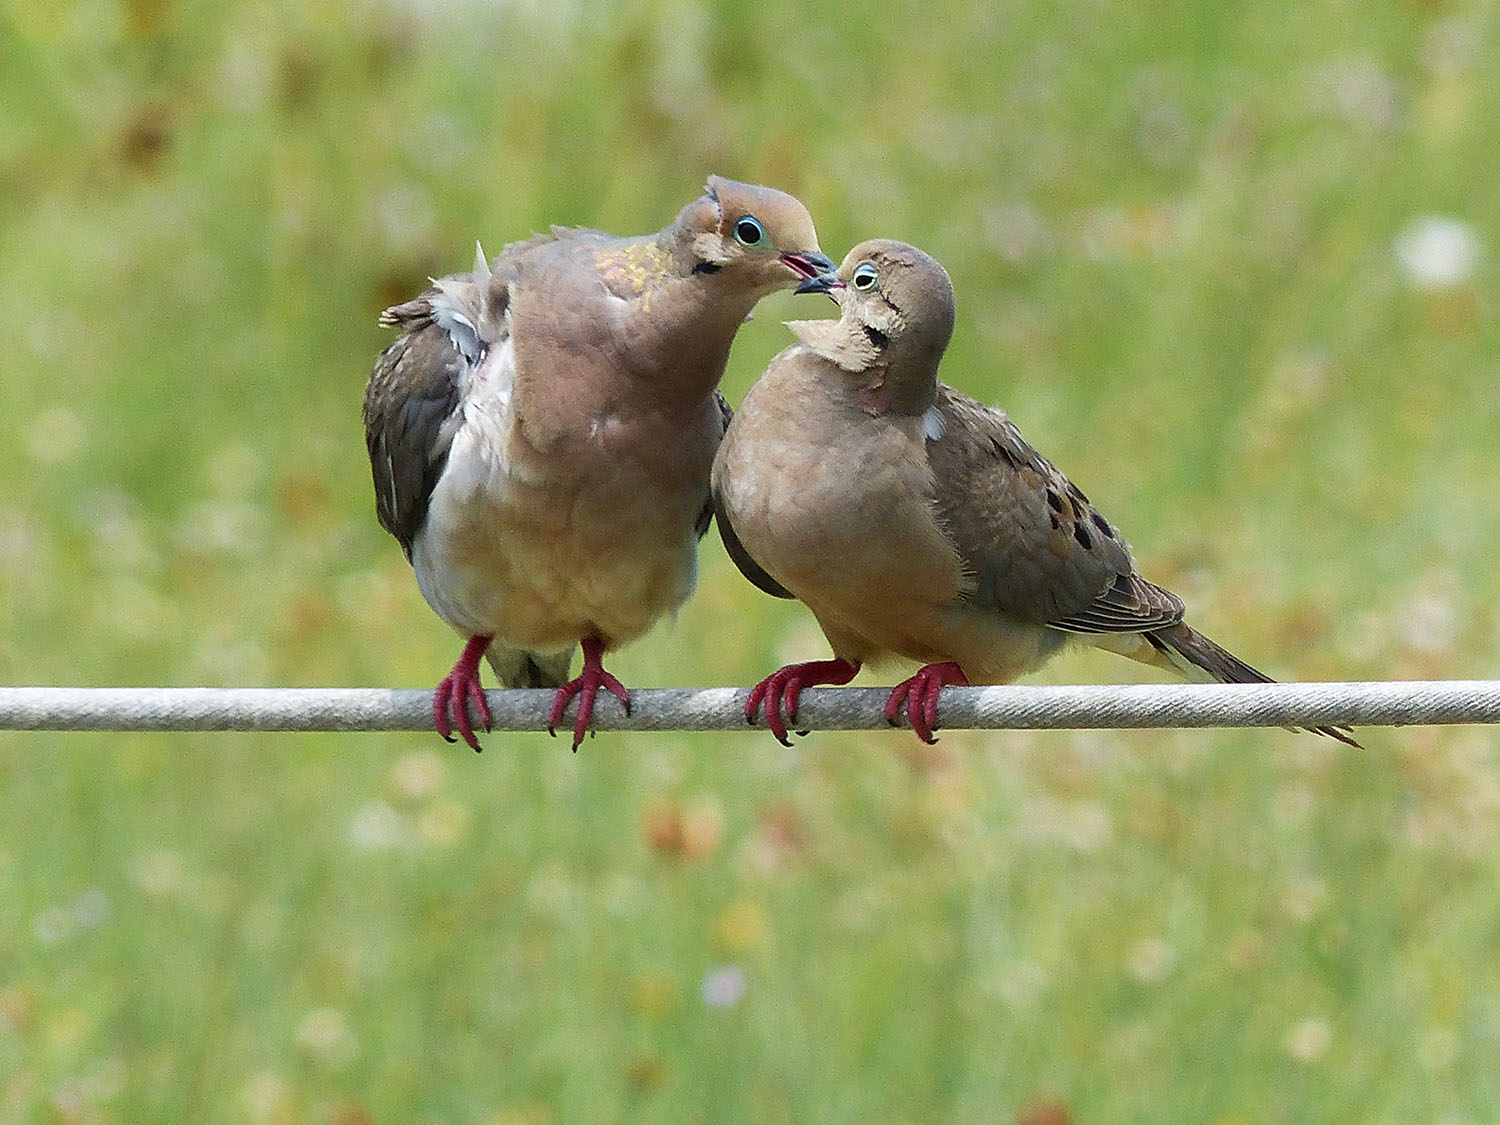 Cuddly Mourning Doves